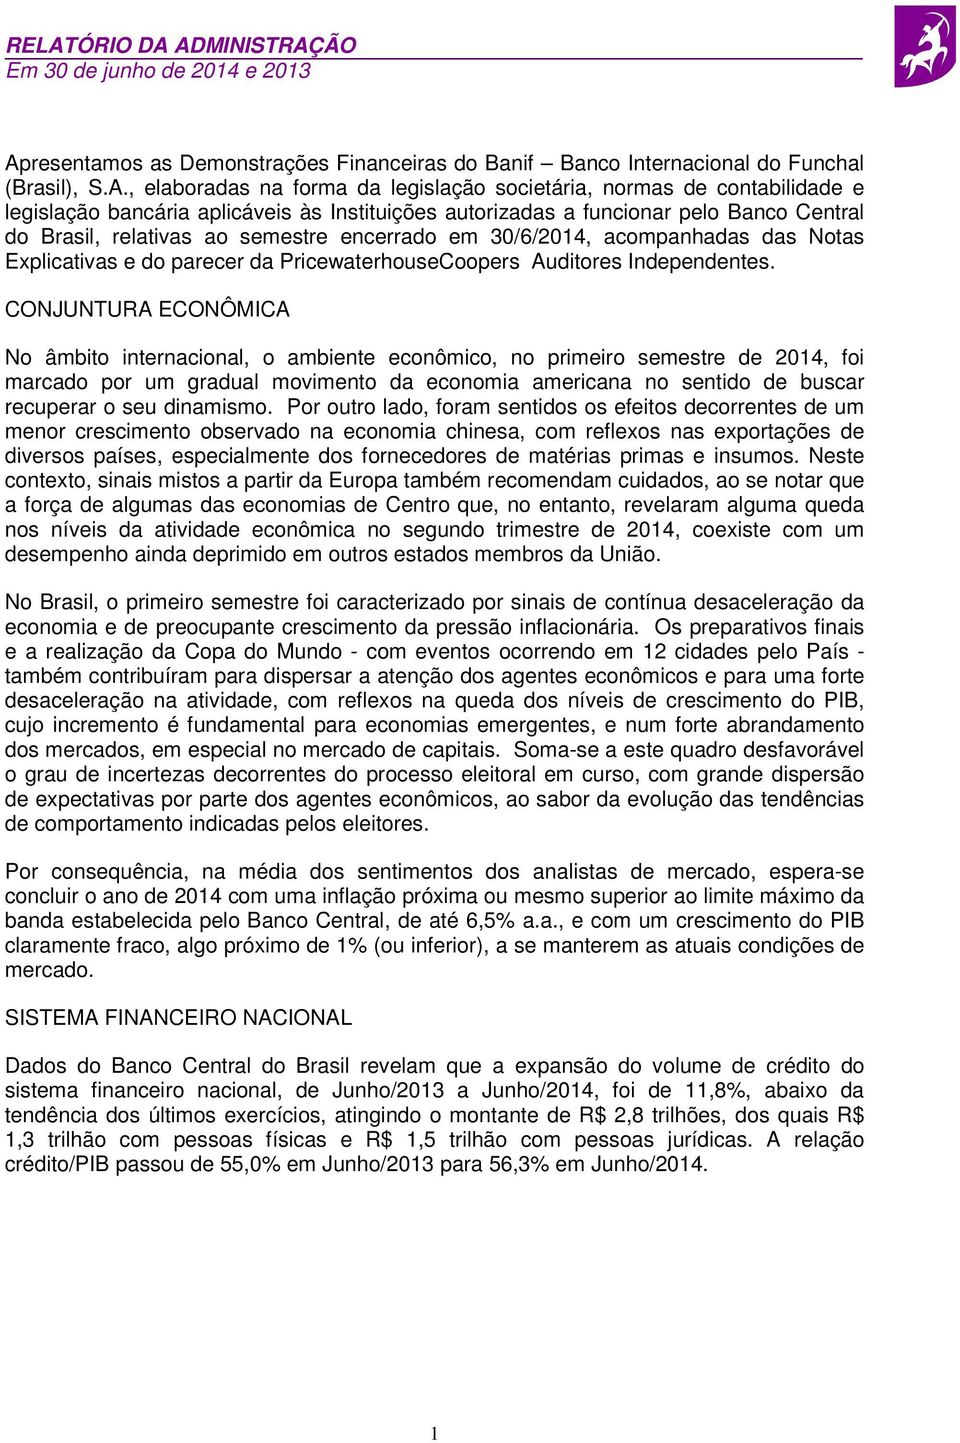 das Notas Explicativas e do parecer da PricewaterhouseCoopers Auditores Independentes.